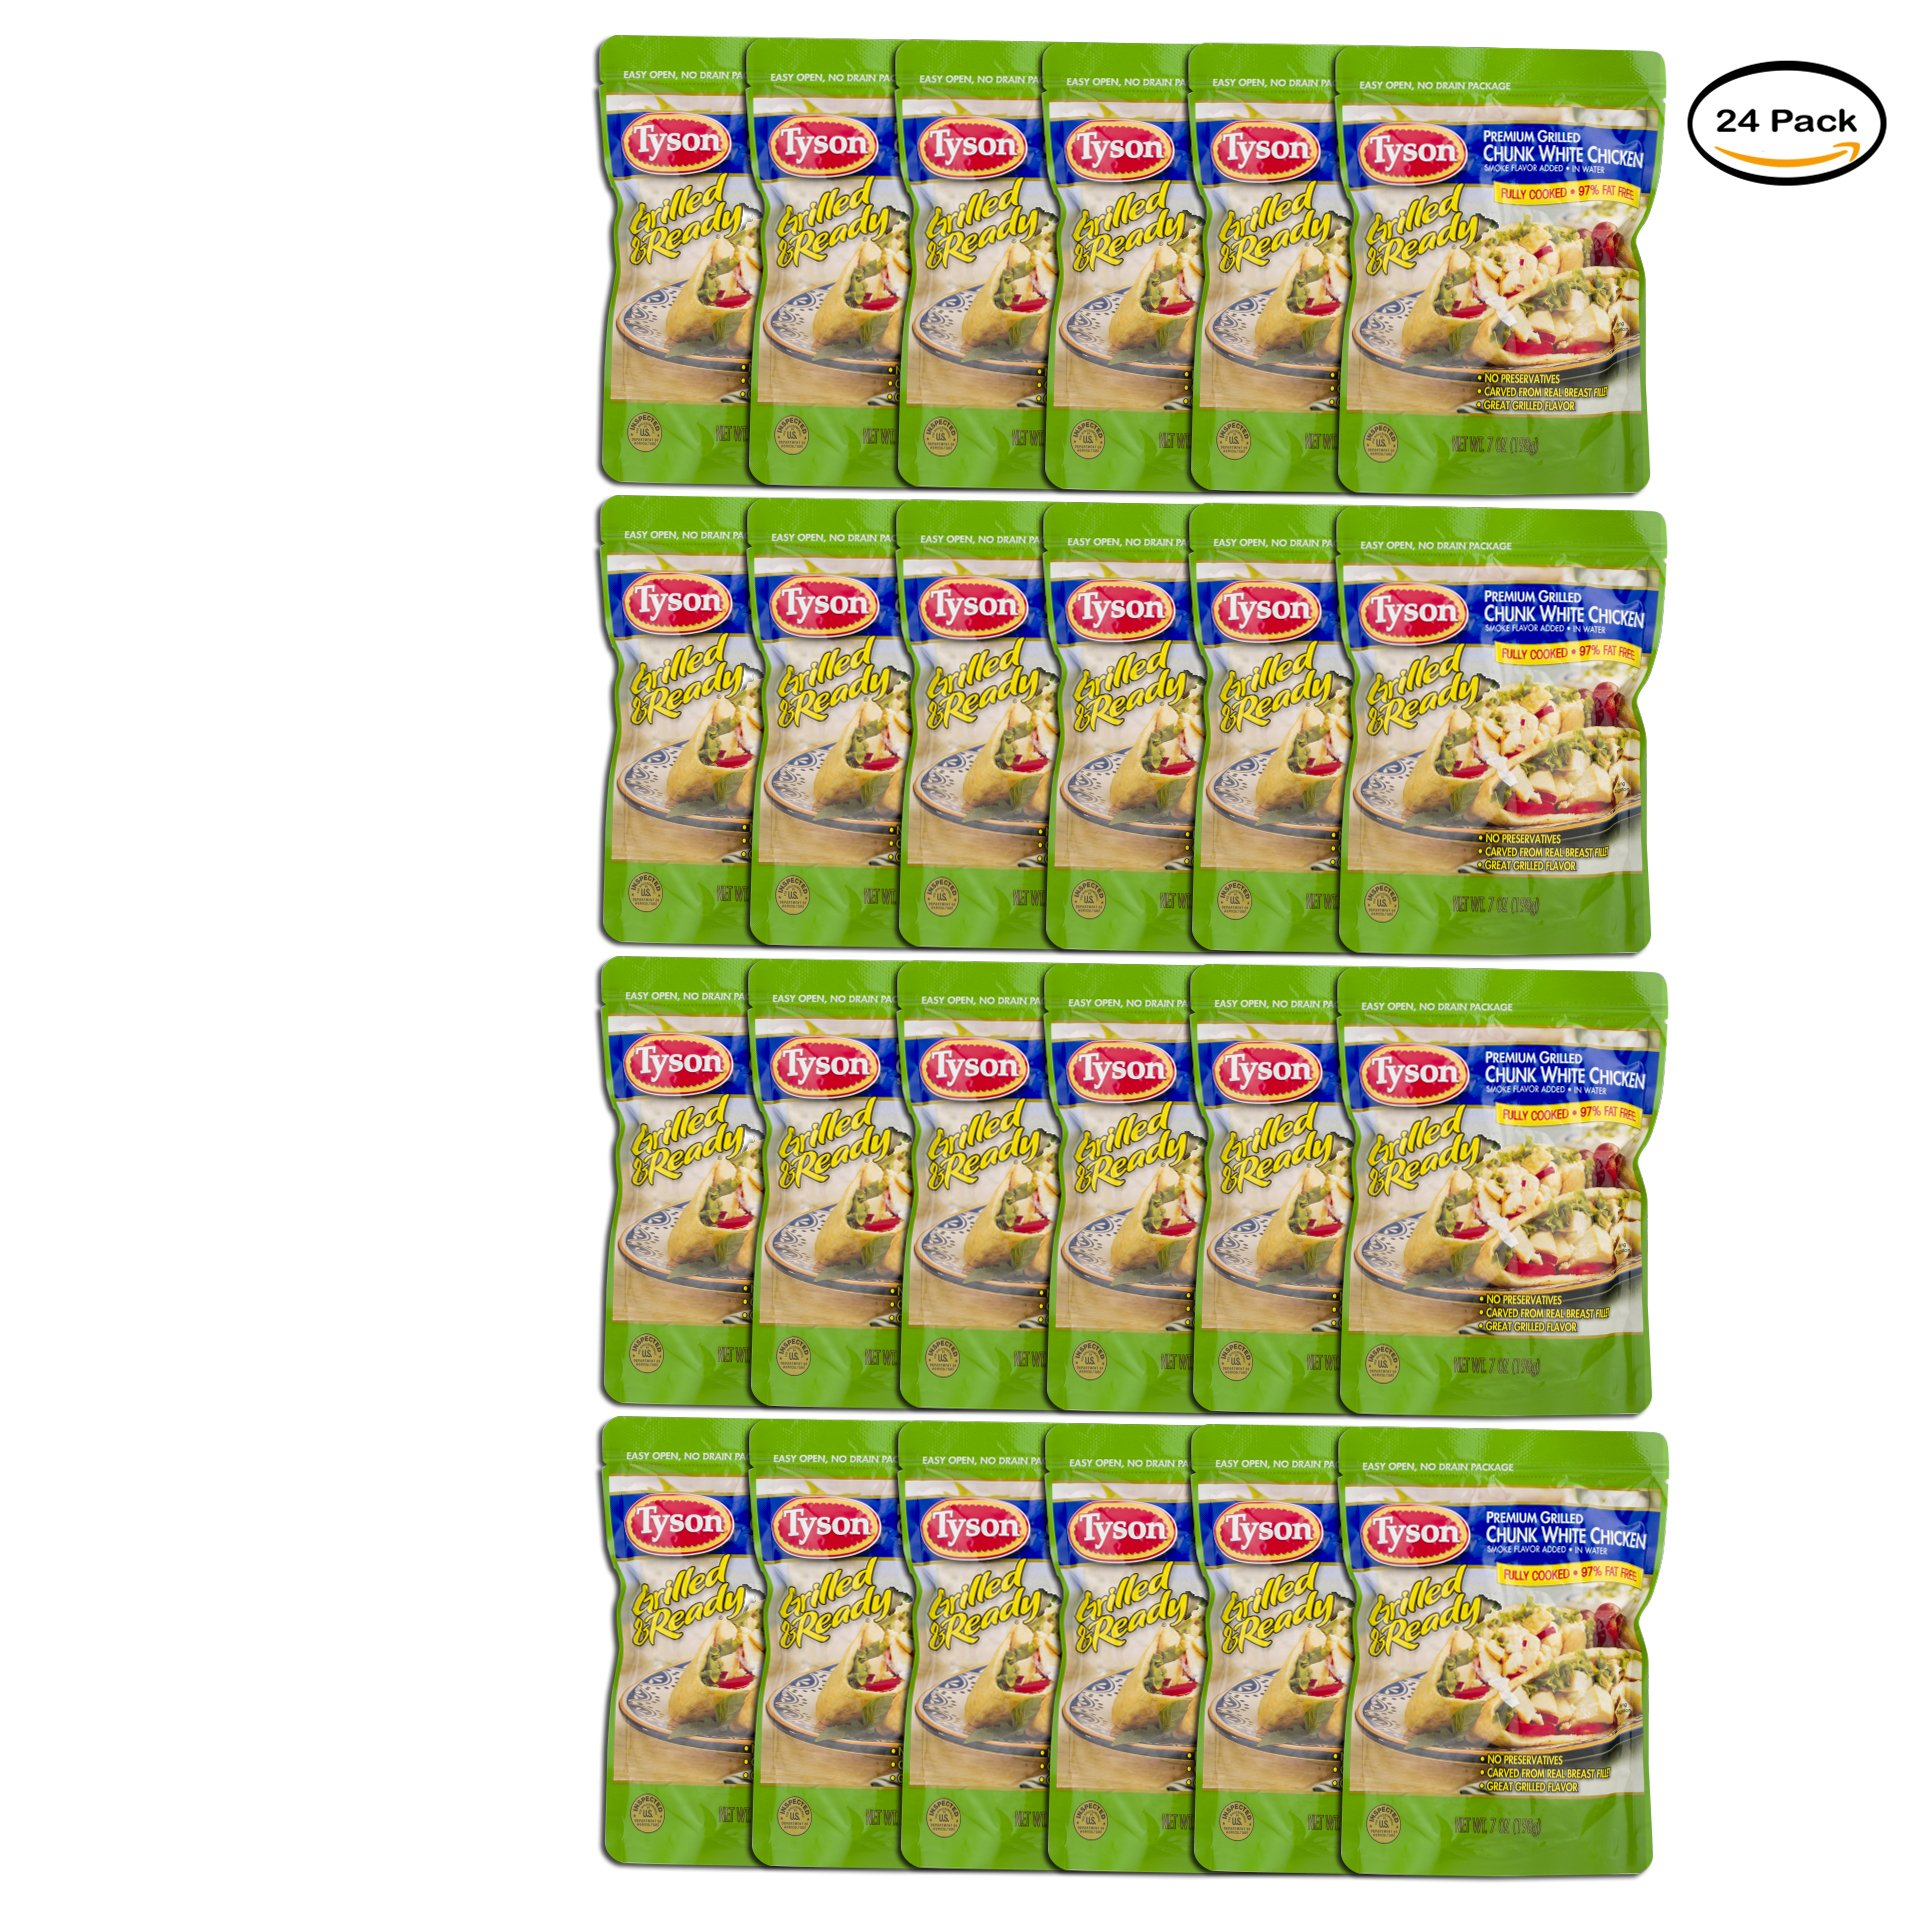 PACK OF 24 - Tyson Grilled & Ready Premium Chunk White Chicken, 7 oz